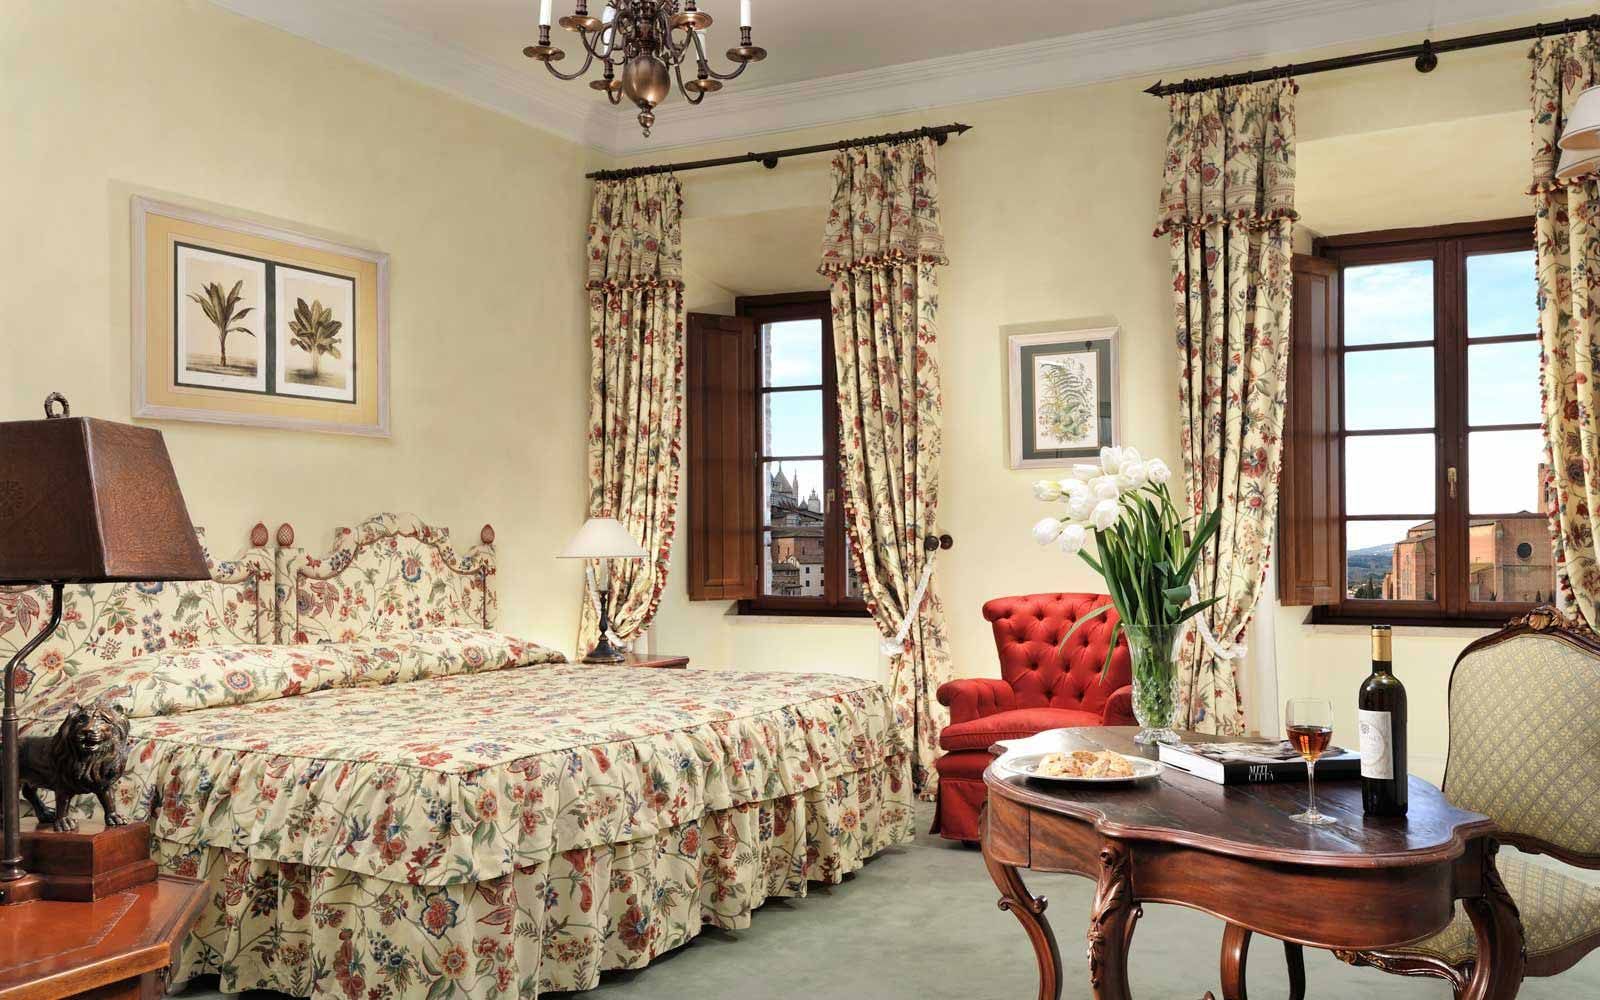 Royal Double Room at the Grand Hotel Continental